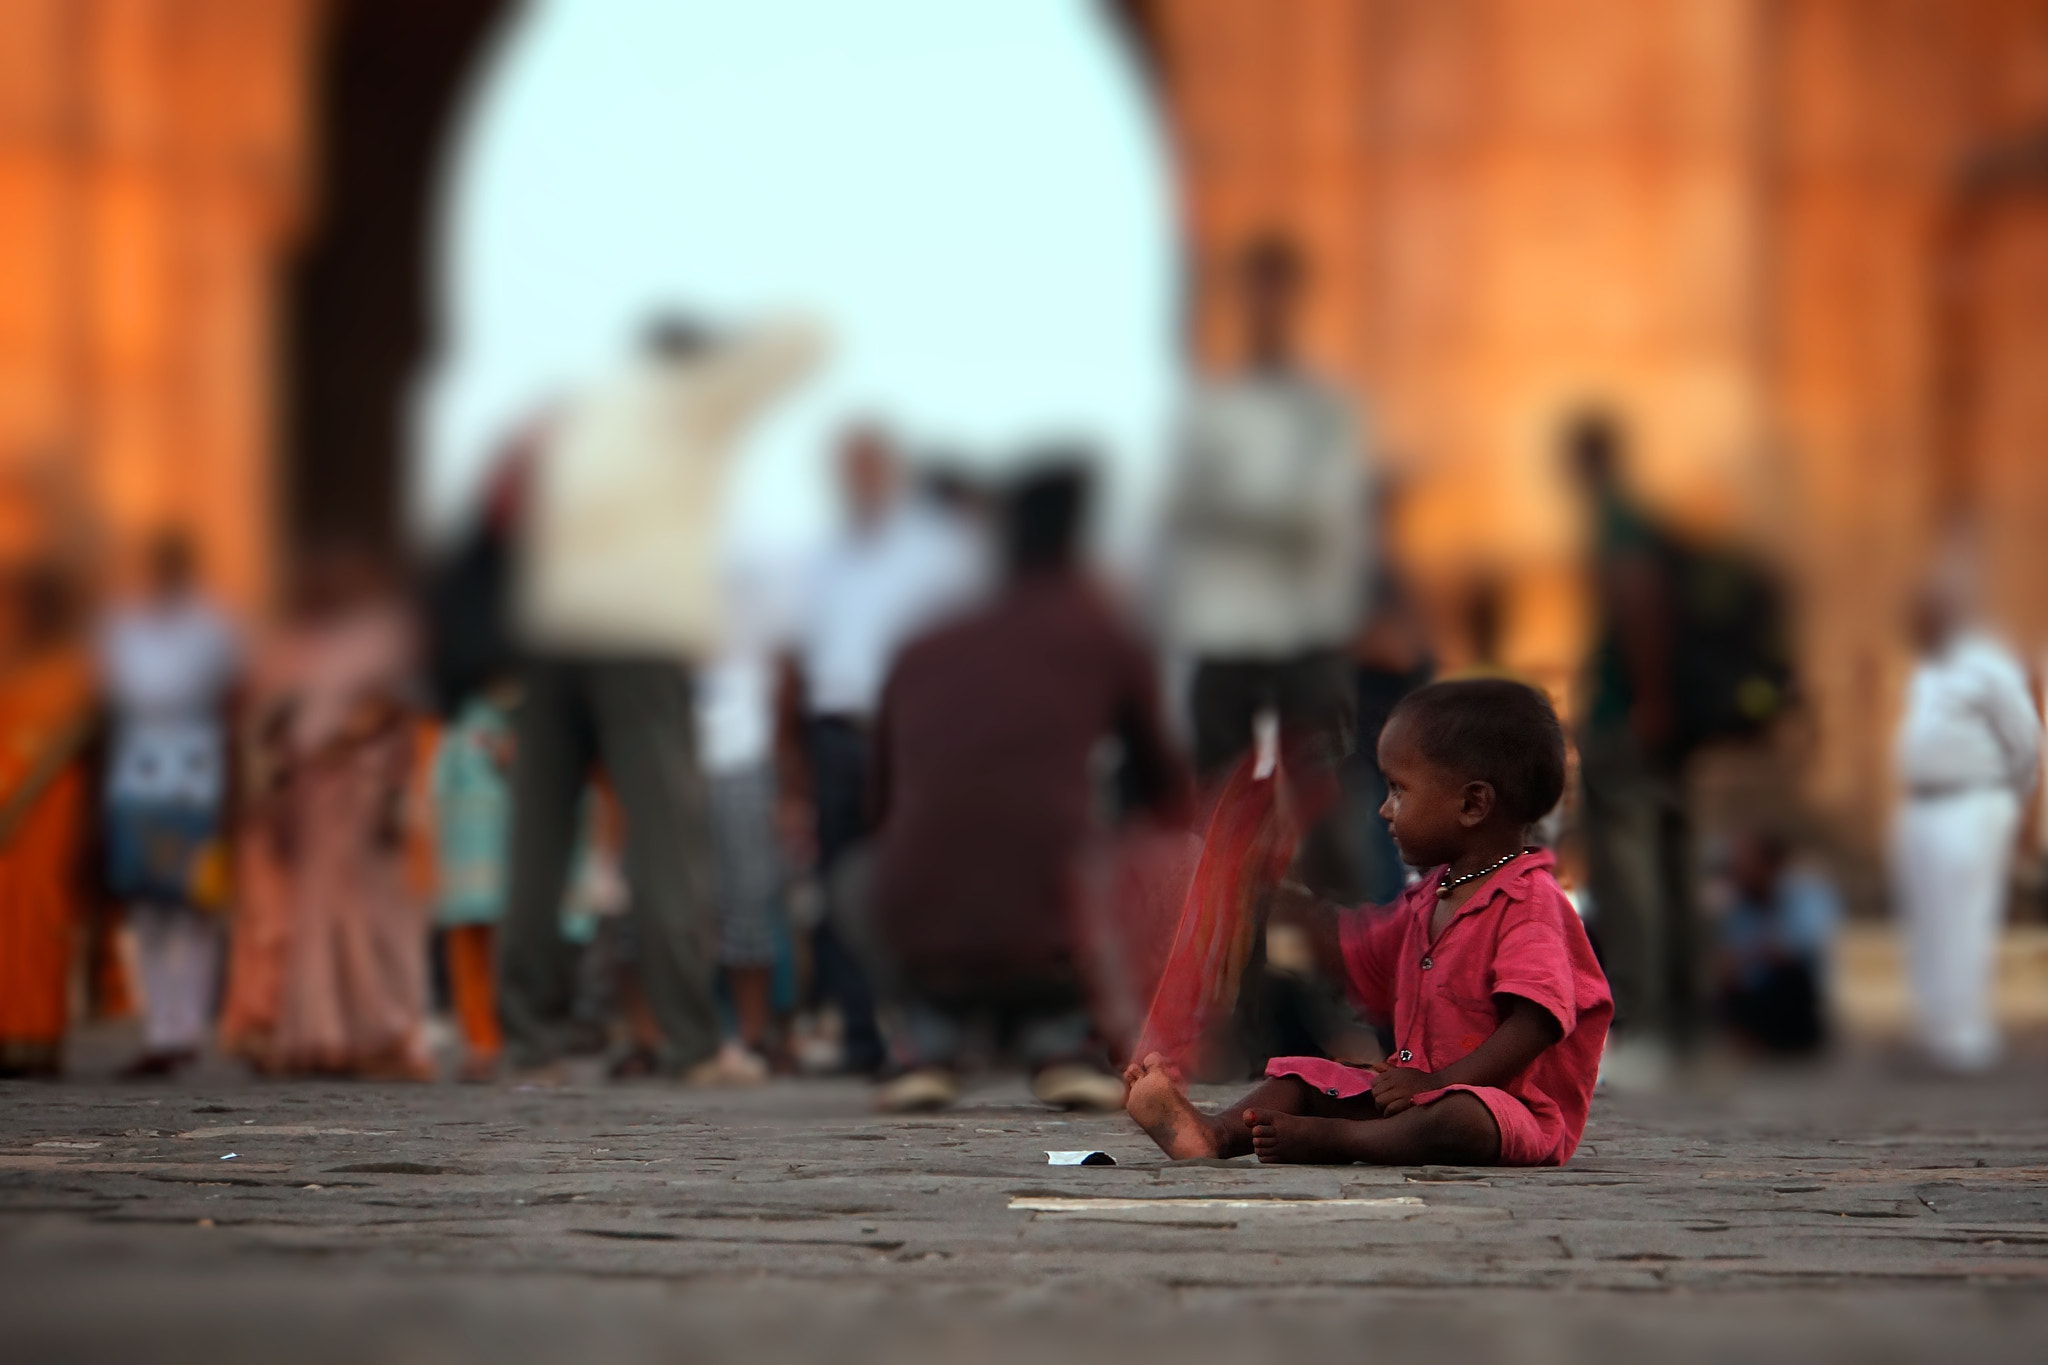 Photograph In My Own World by Sunil Chawla on 500px